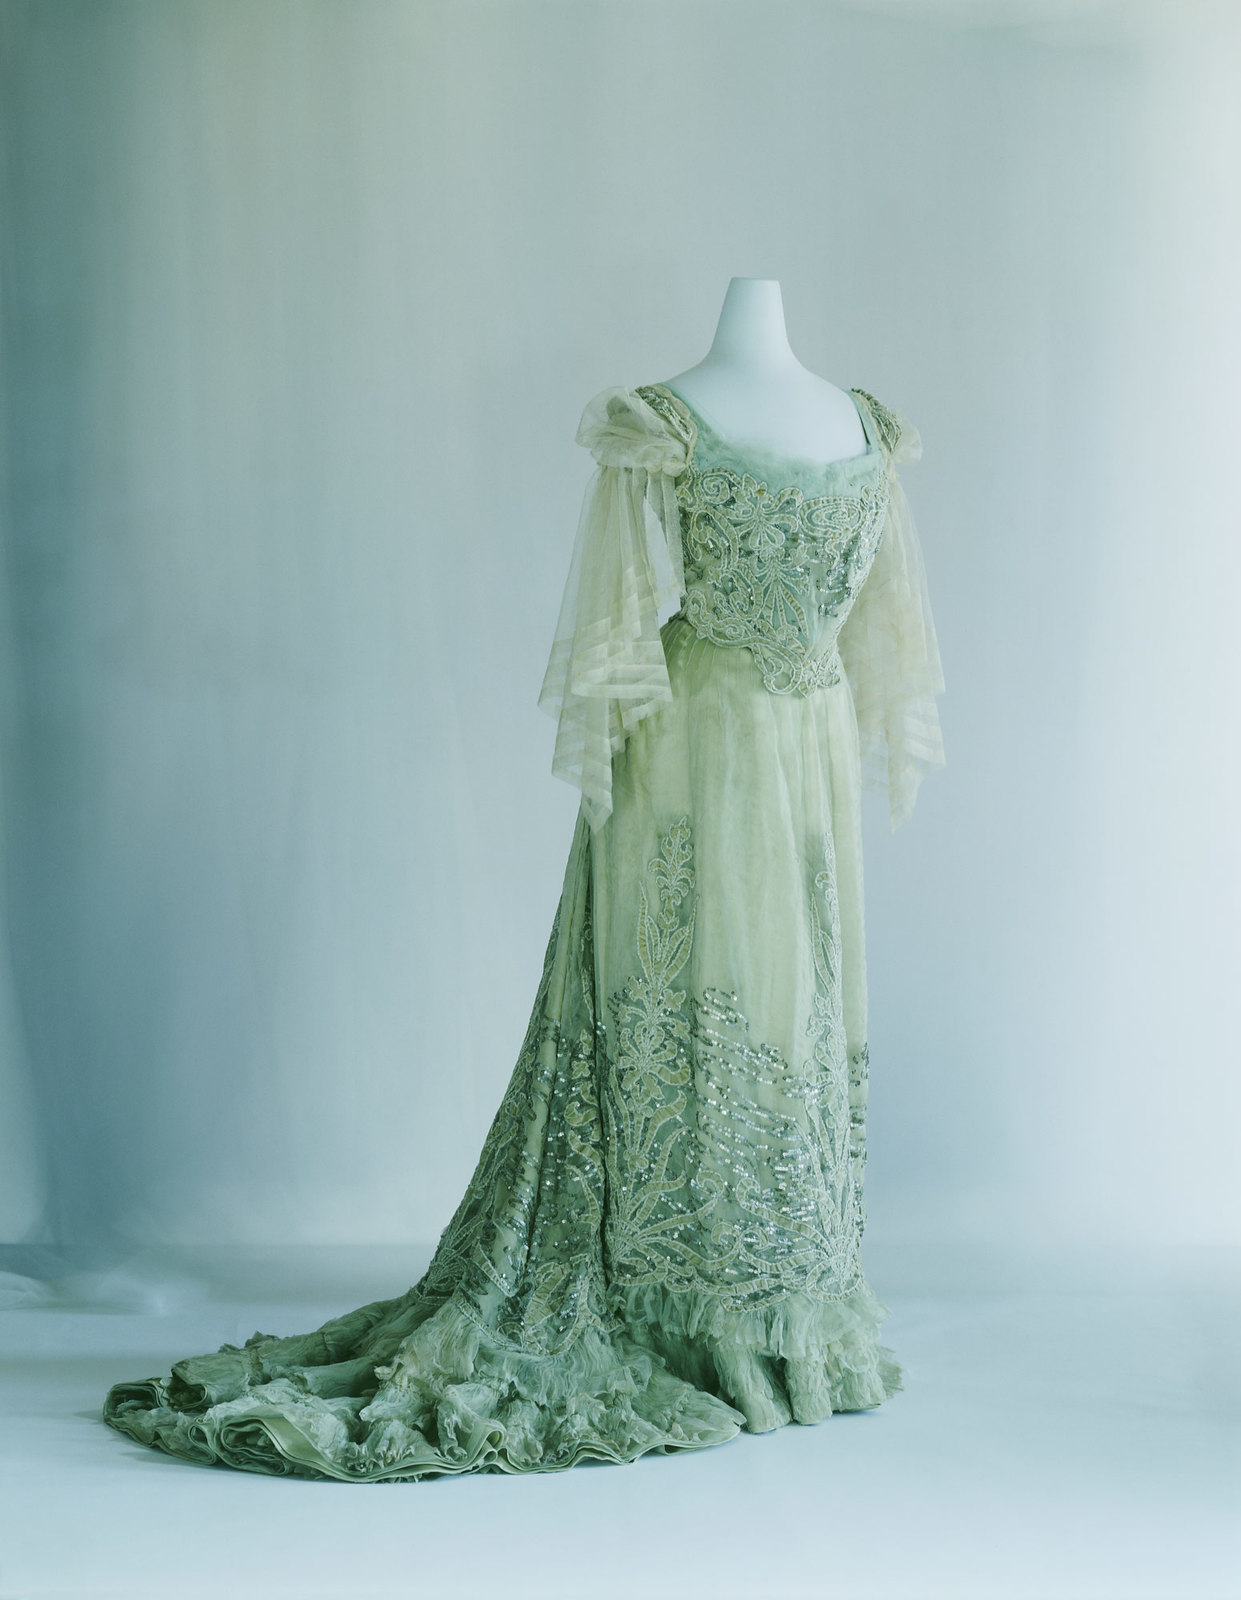 1900. Evening Dress. Pale green silk chiffon and velvet; S-curve silhouette; appliqué of plant pattern; sequin and cord embroidery with water's-edge pattern. Credit KCI